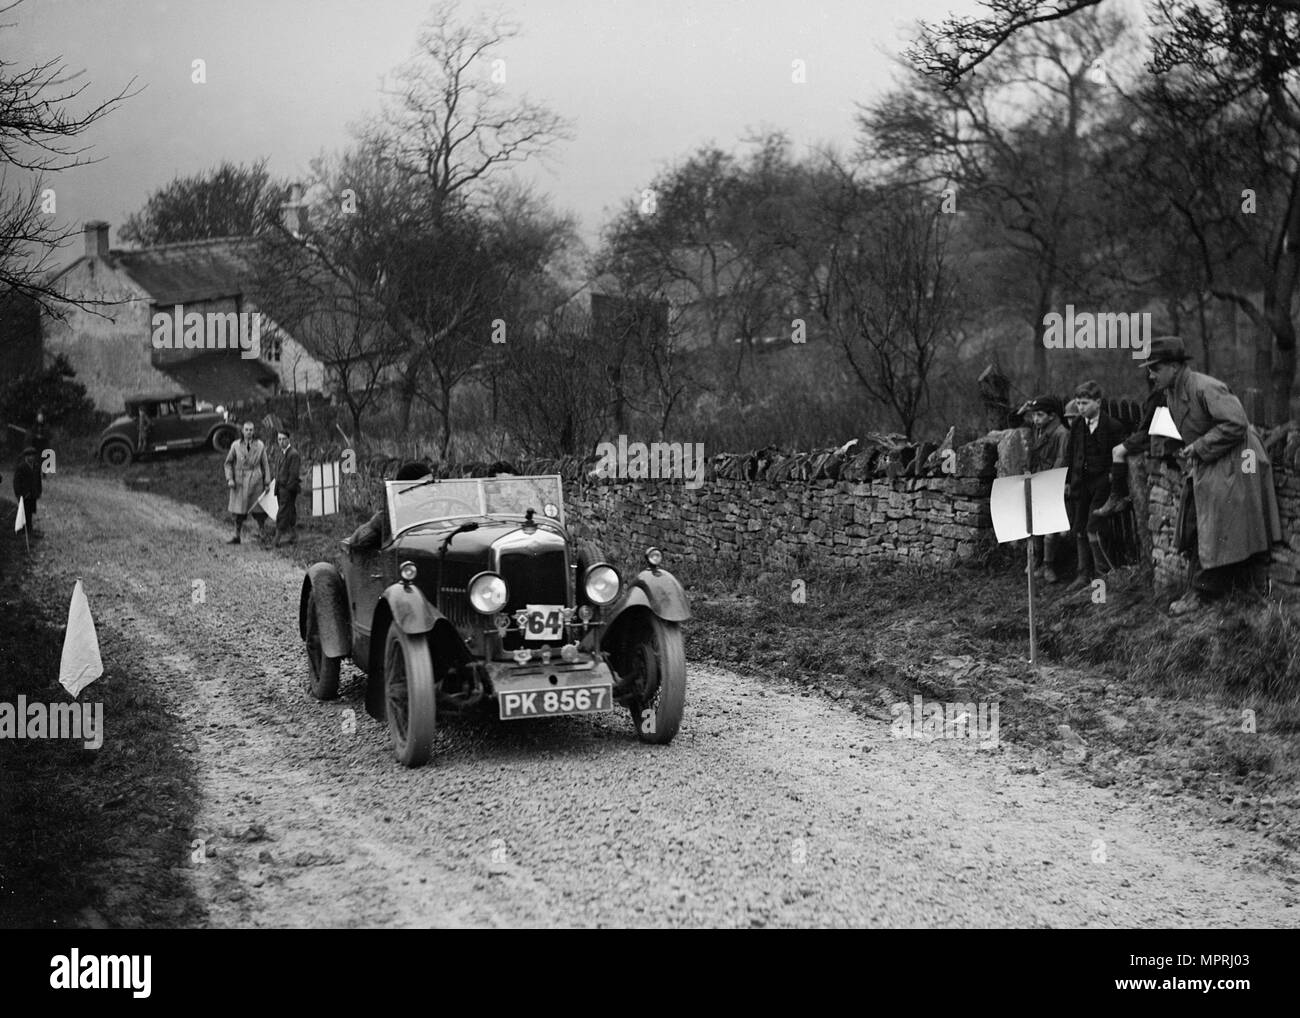 Riley open 4-seater tourer of Hugh Hunter competing in the NWLMC London-Gloucester Trial, 1931. Artist: Bill Brunell. - Stock Image